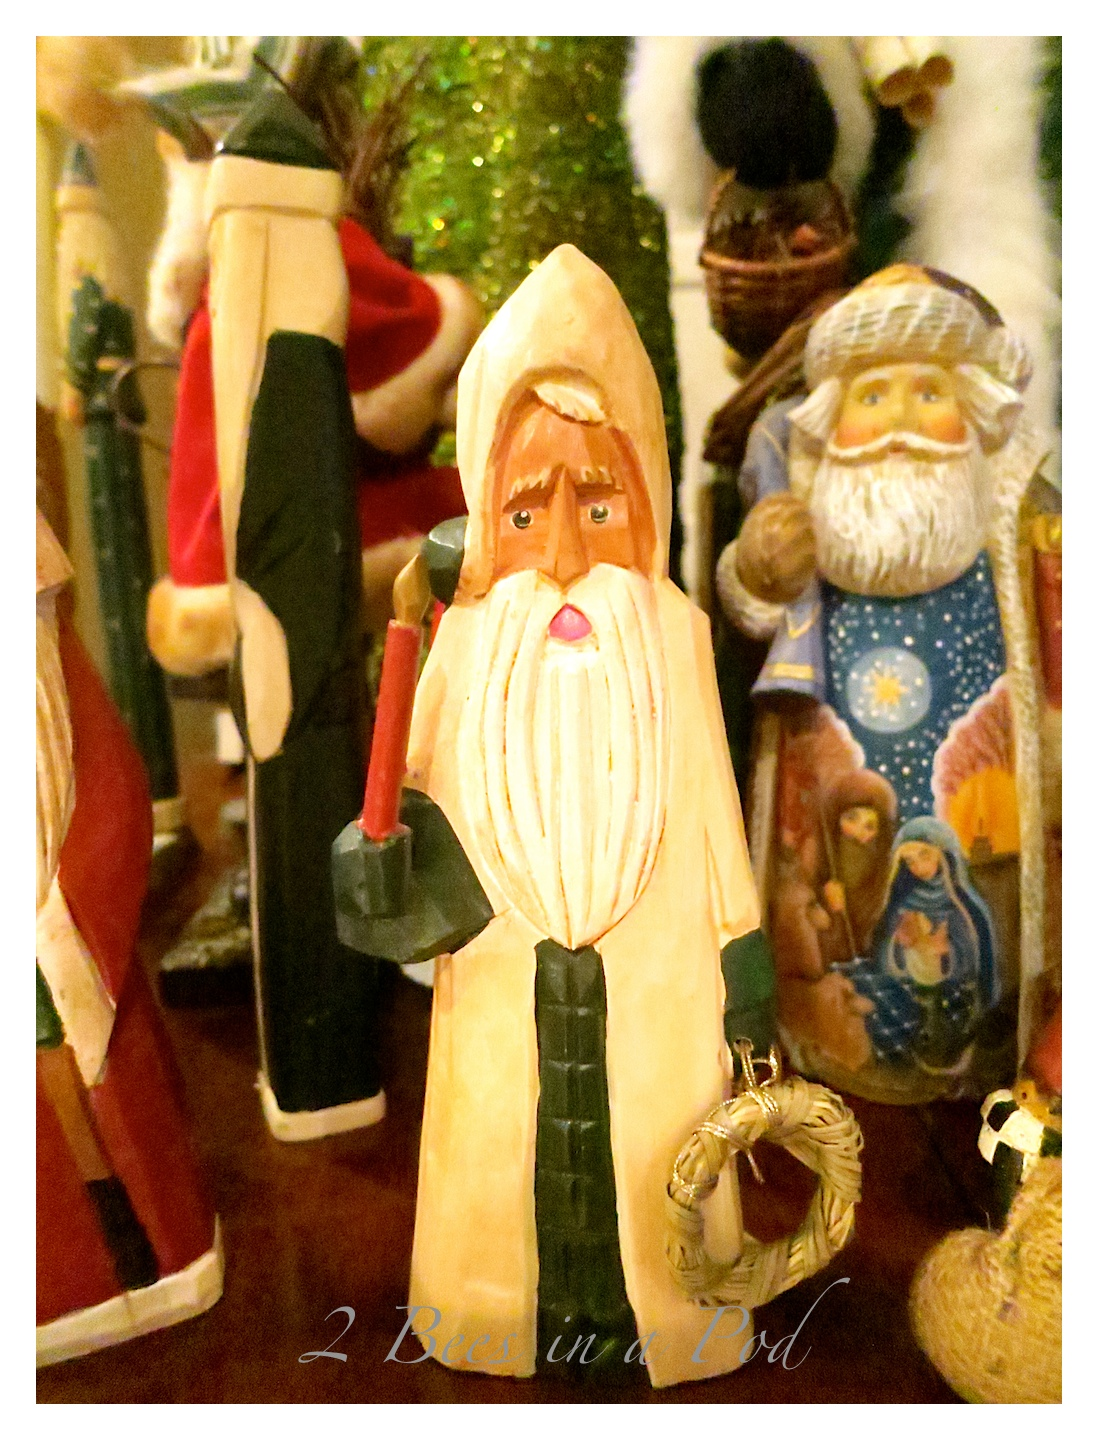 Beautiful rustic wood carved Santa Claus and hand painted